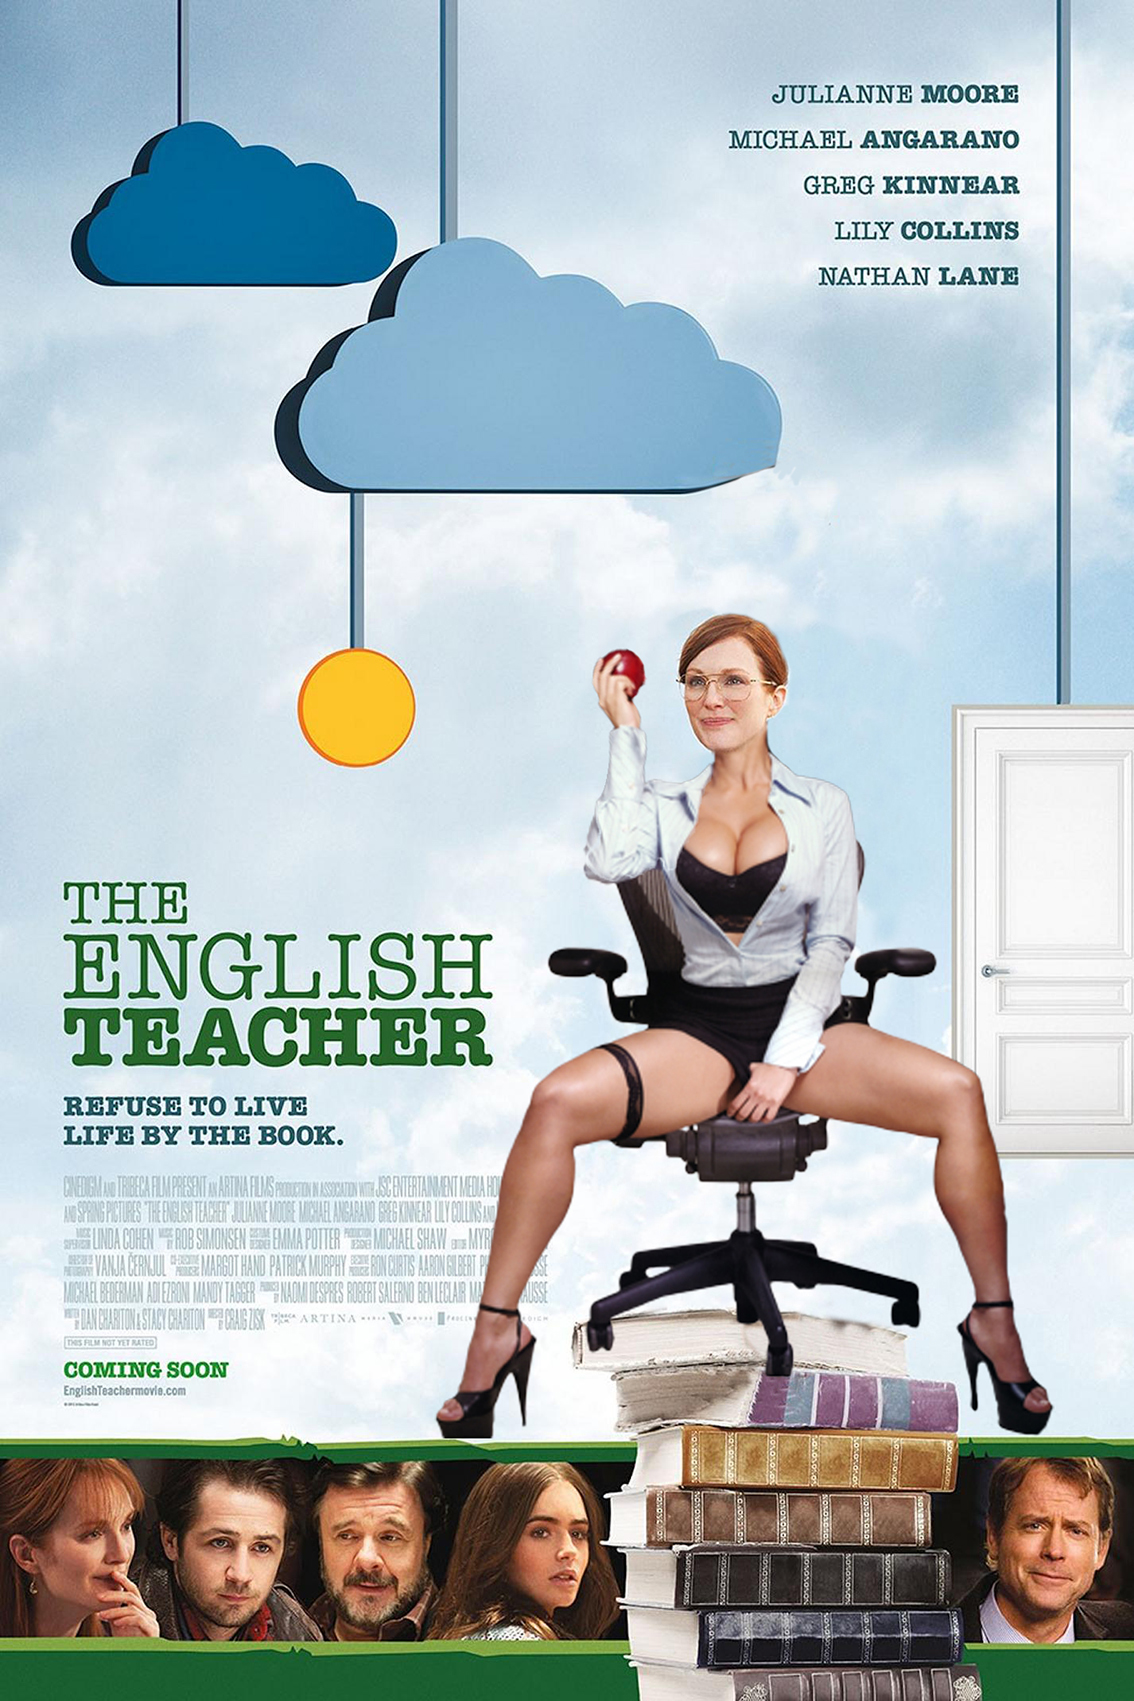 The English Teacher [2013 USA Movie] Comedy, Drama